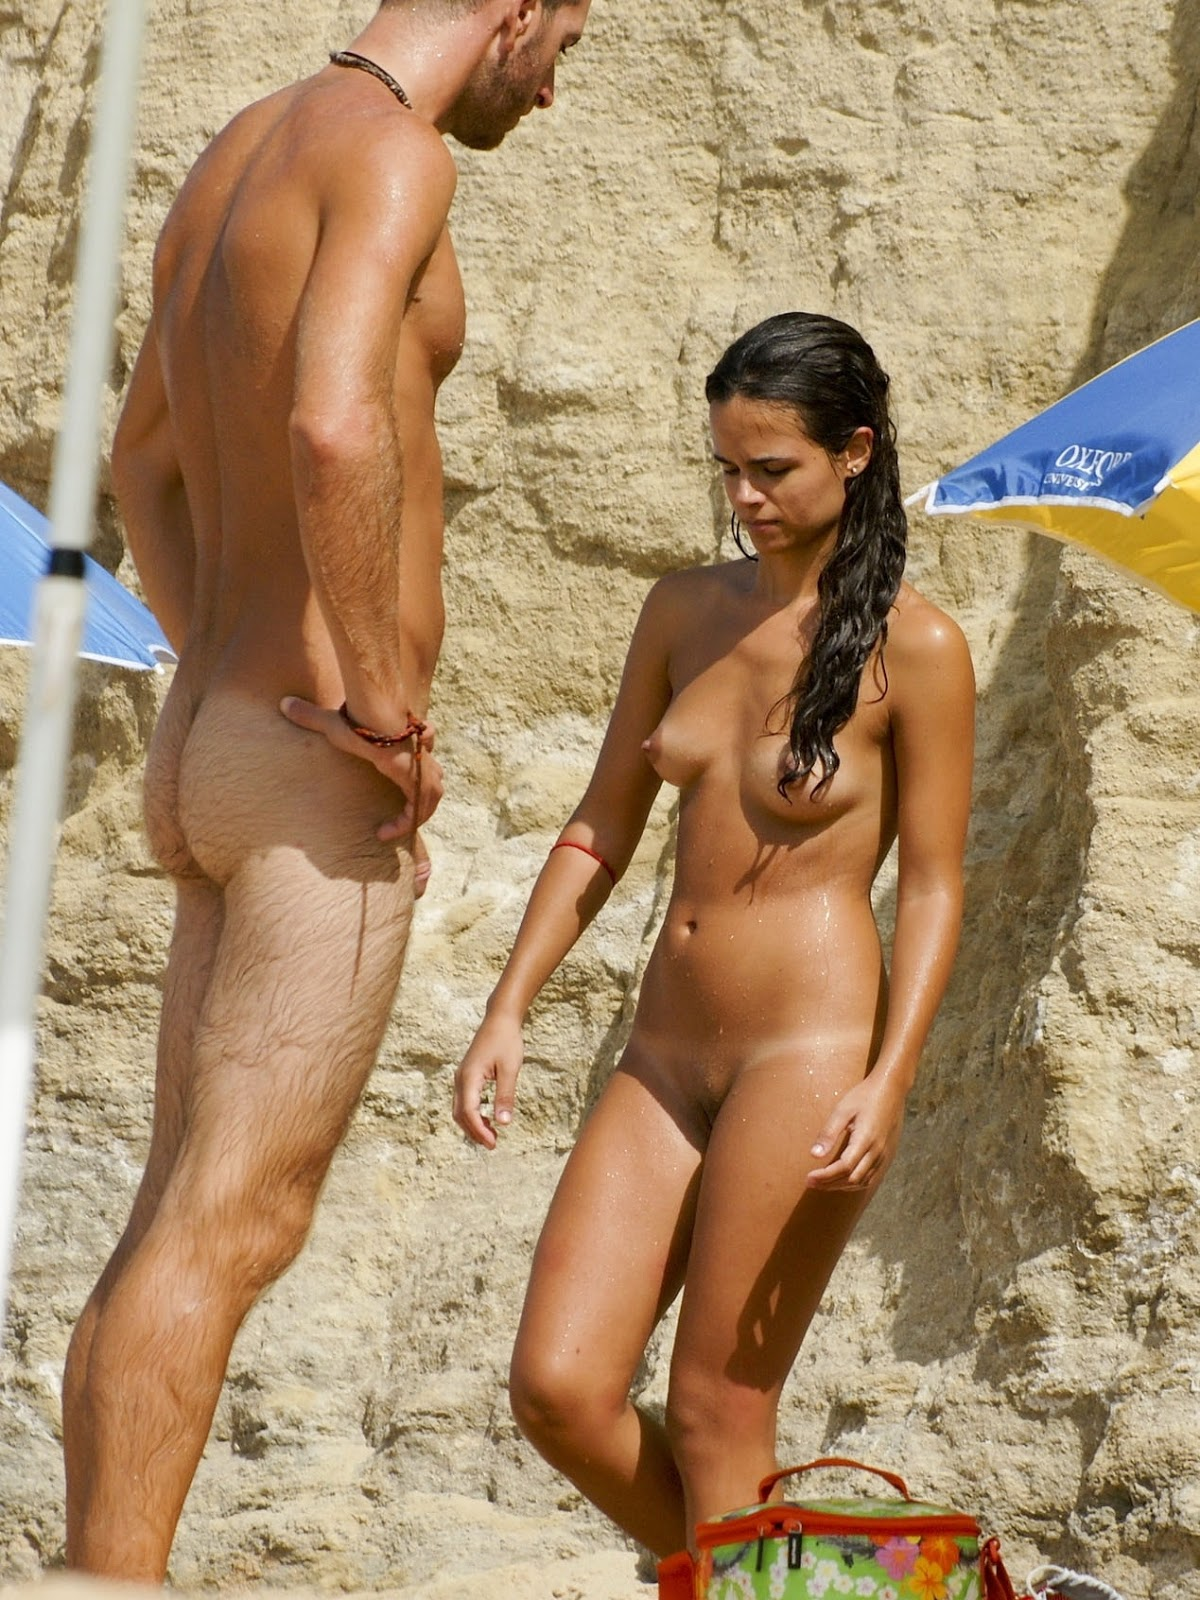 Nudism - Photo - Hq  Nudists - Couple - Nude Beach-7017